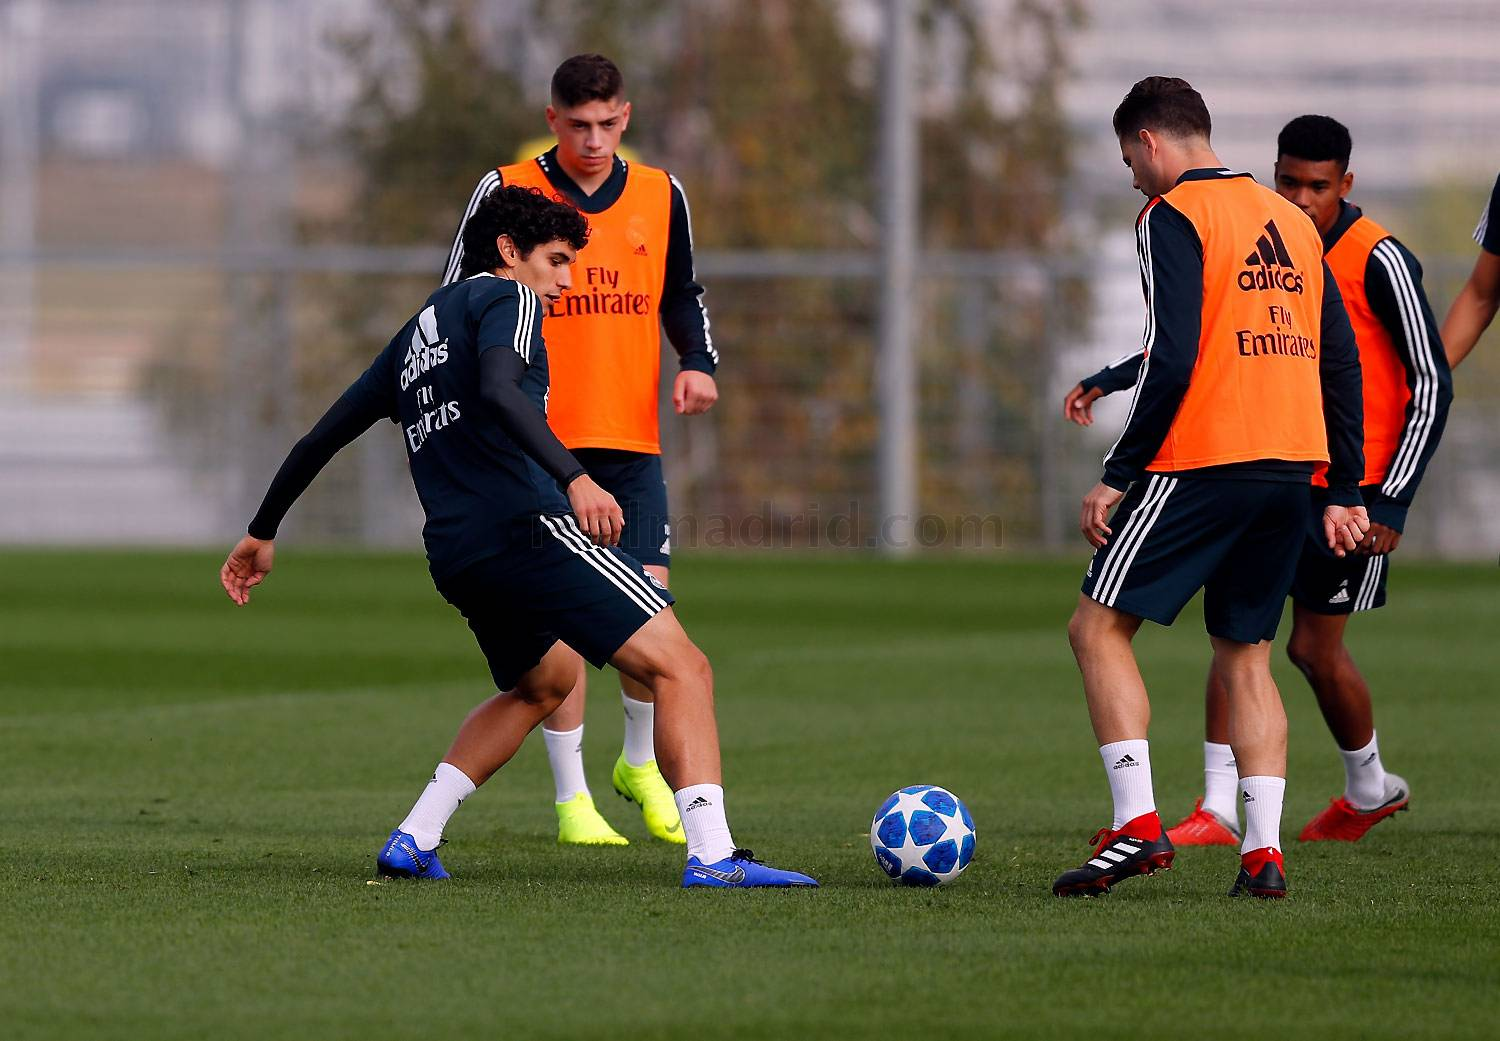 Real Madrid - Entrenamiento del Real Madrid - 21-10-2018